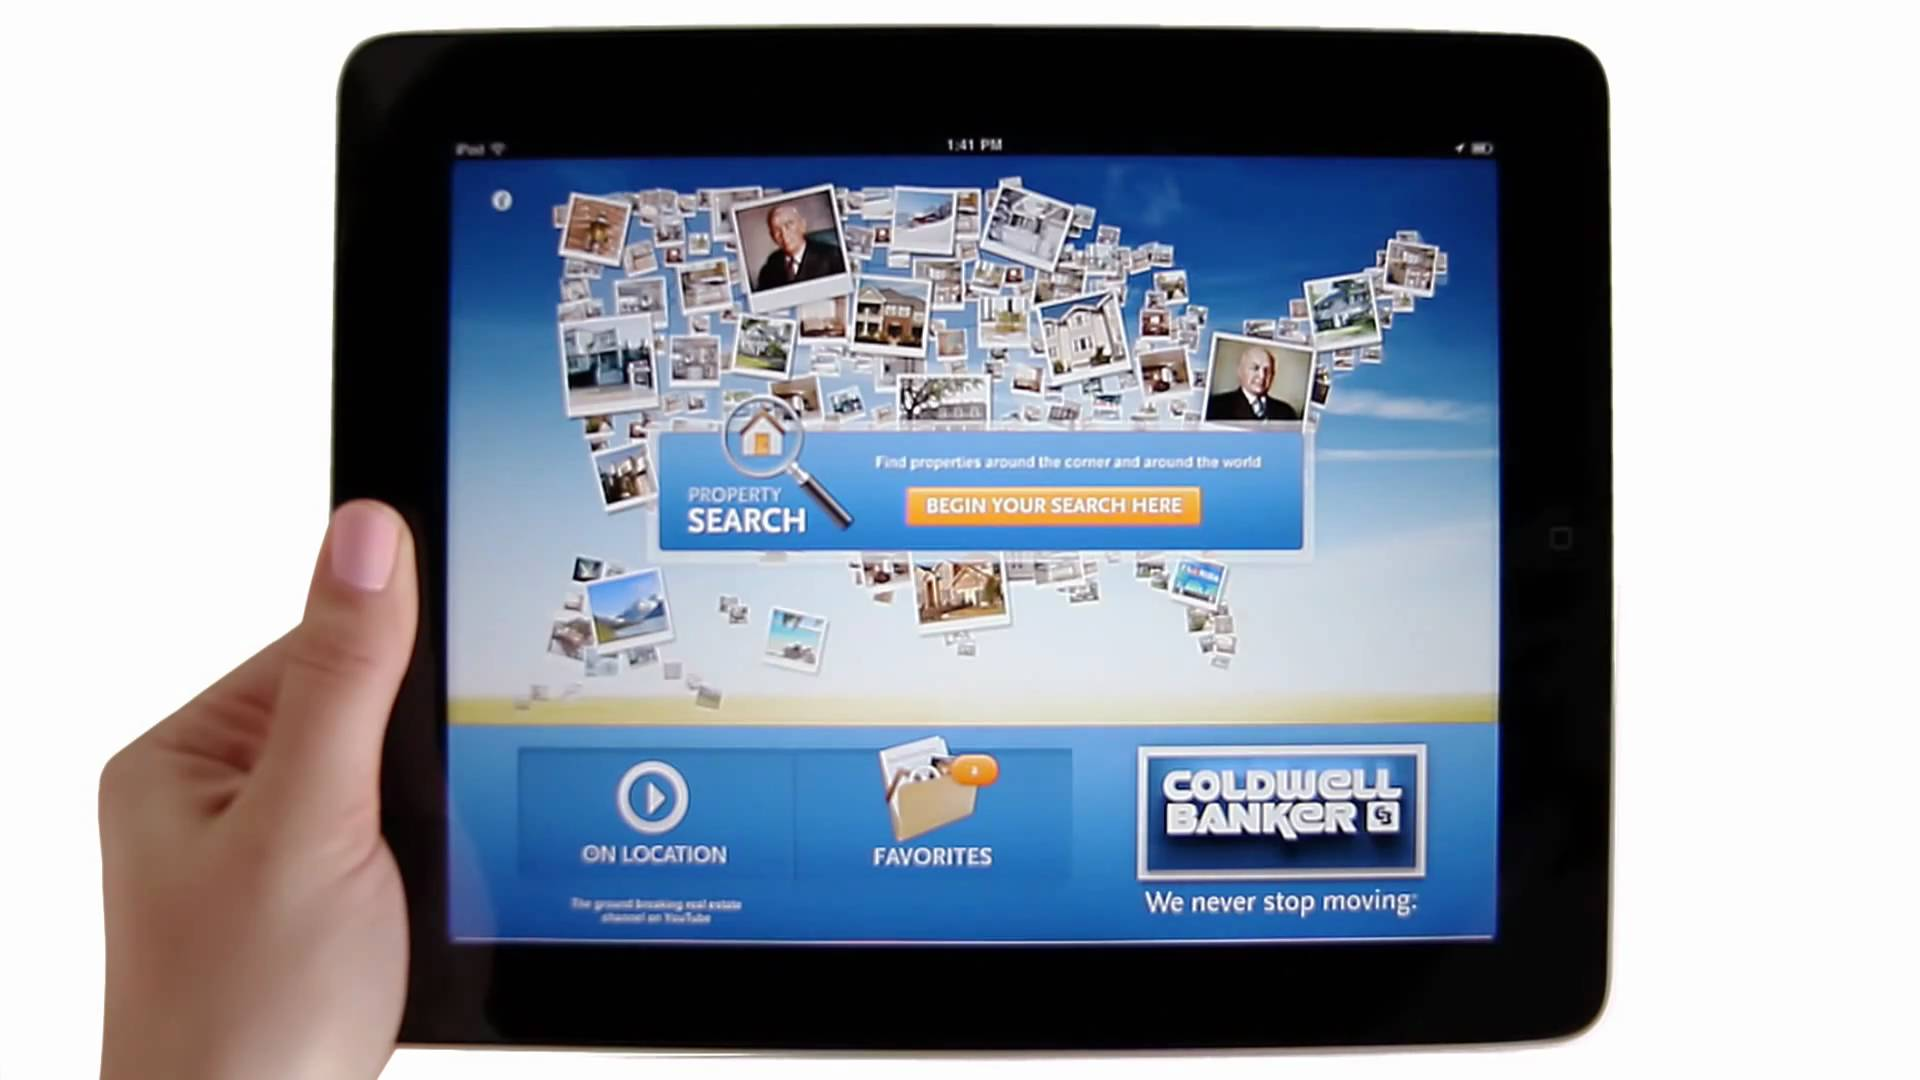 The Coldwell Banker iPad App